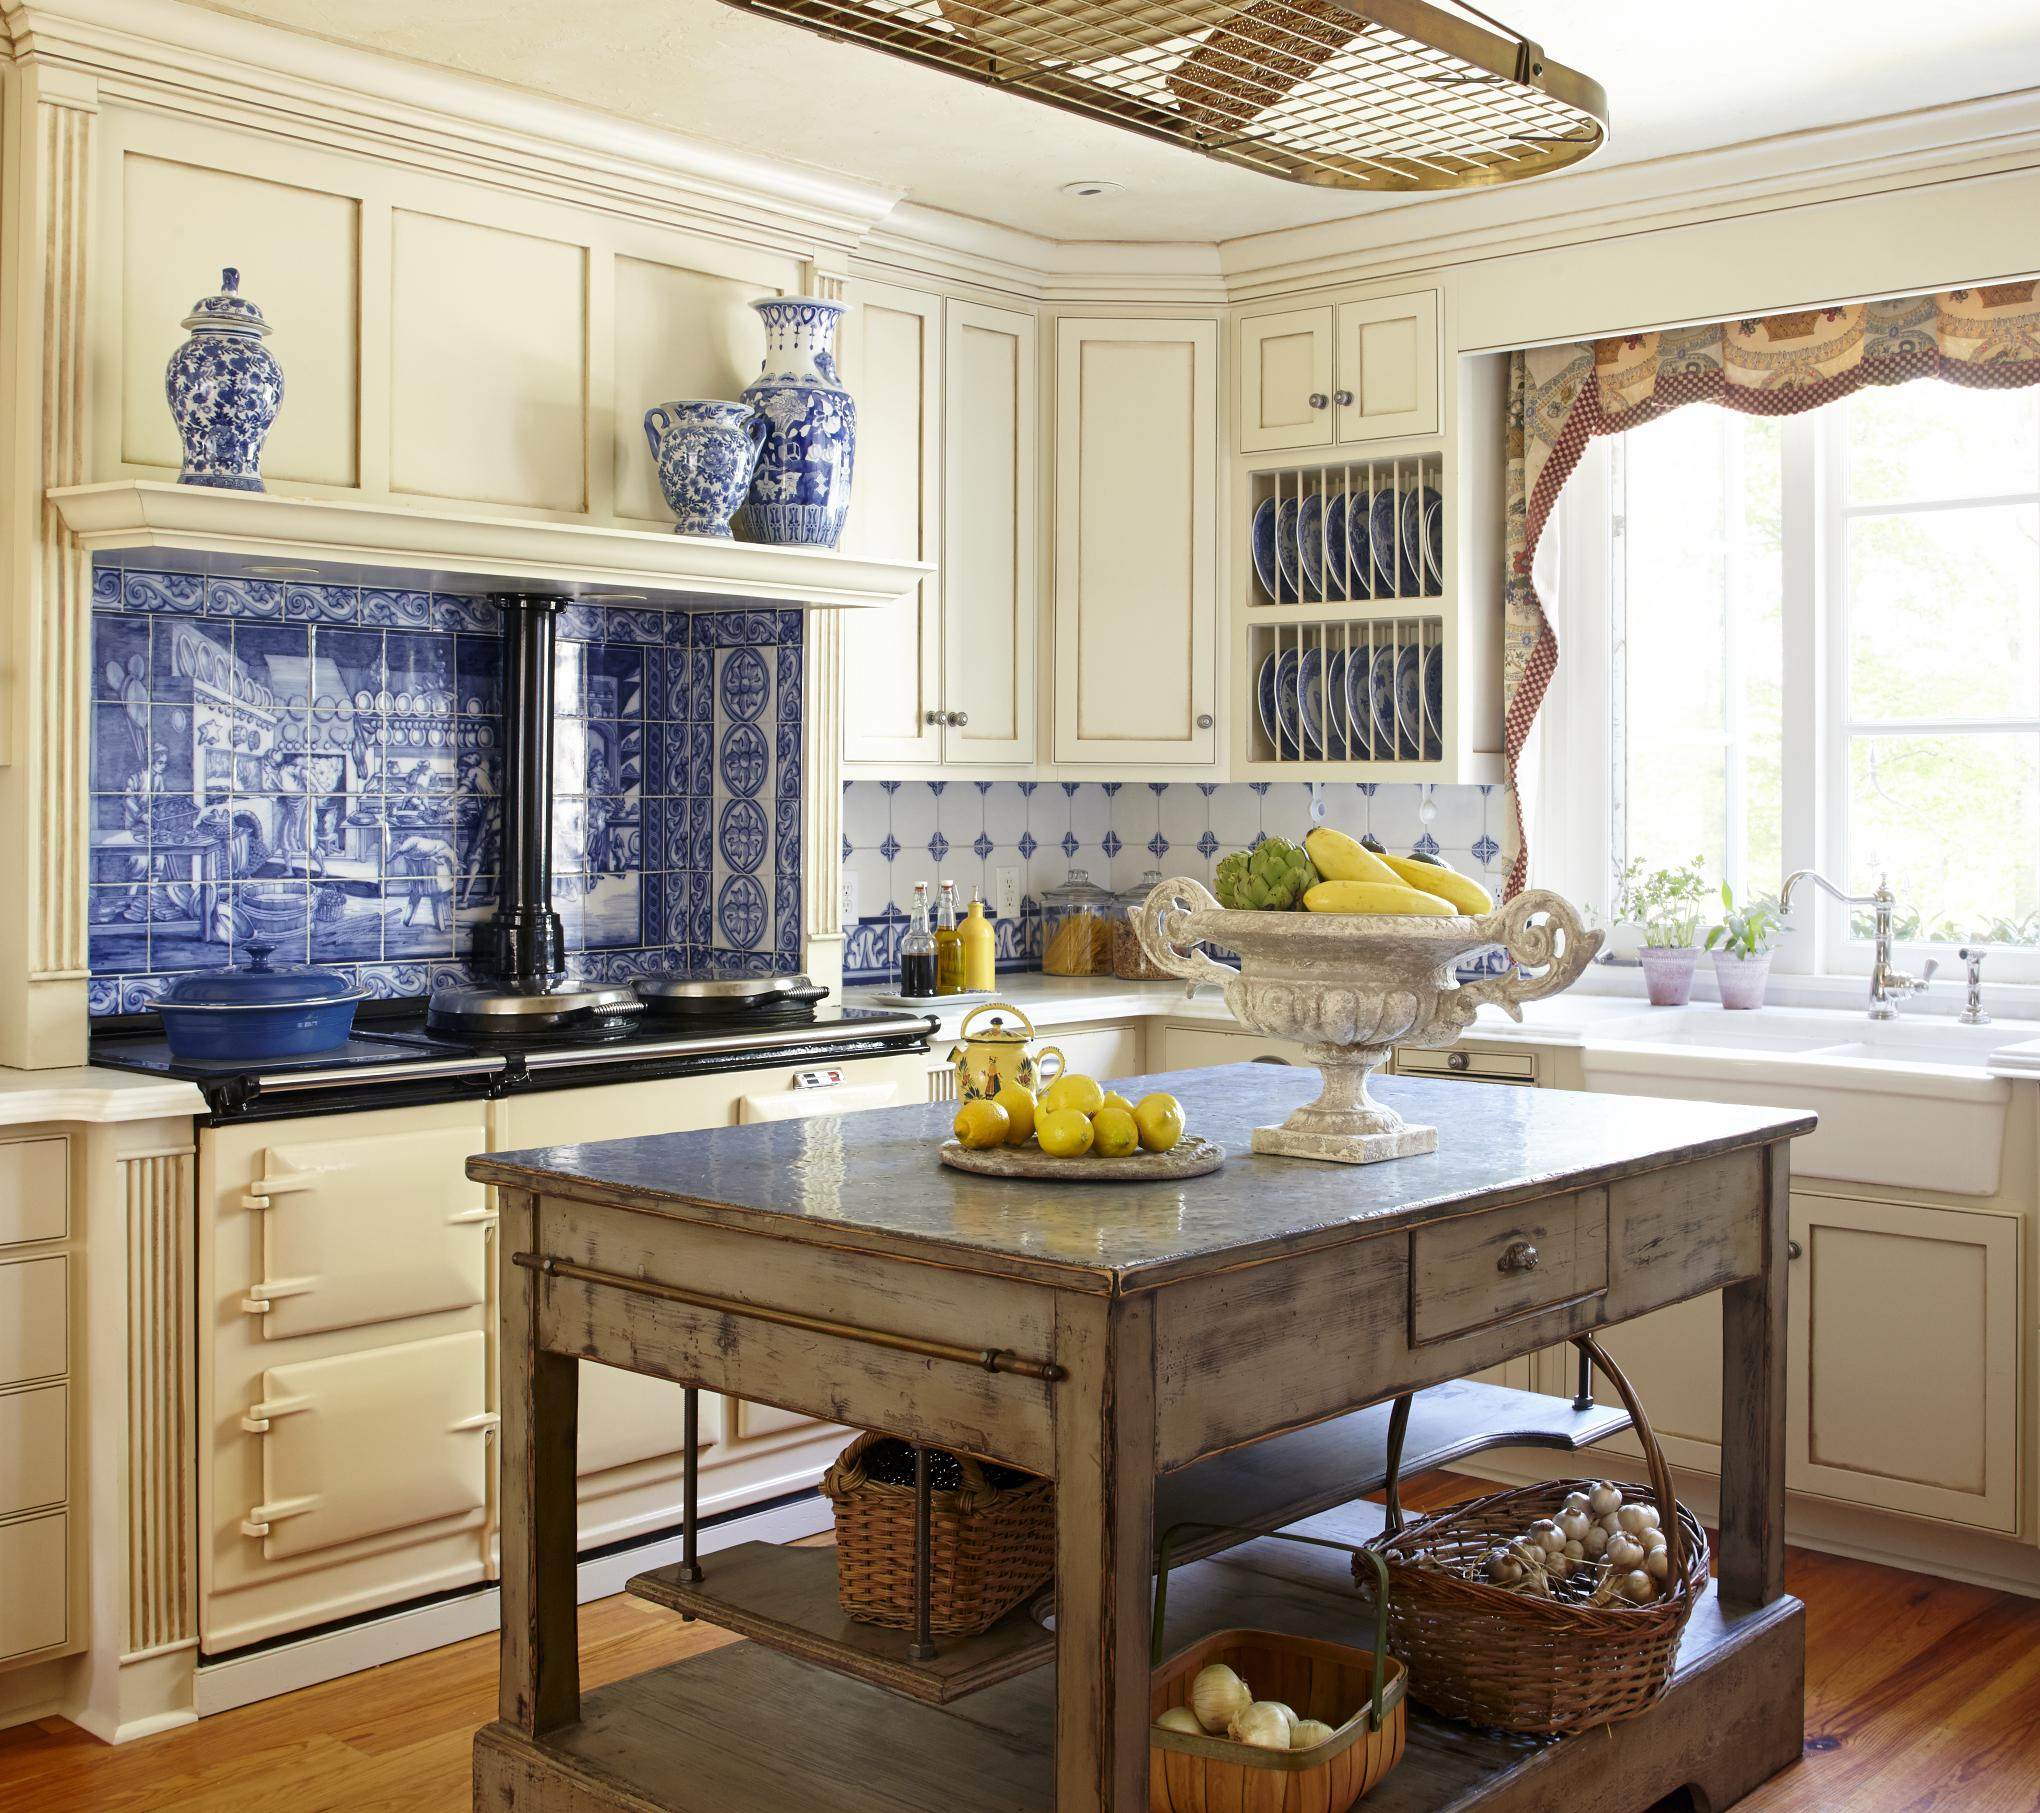 French Country Kitchens Ideas Pictures Advantages Storiestrending Com